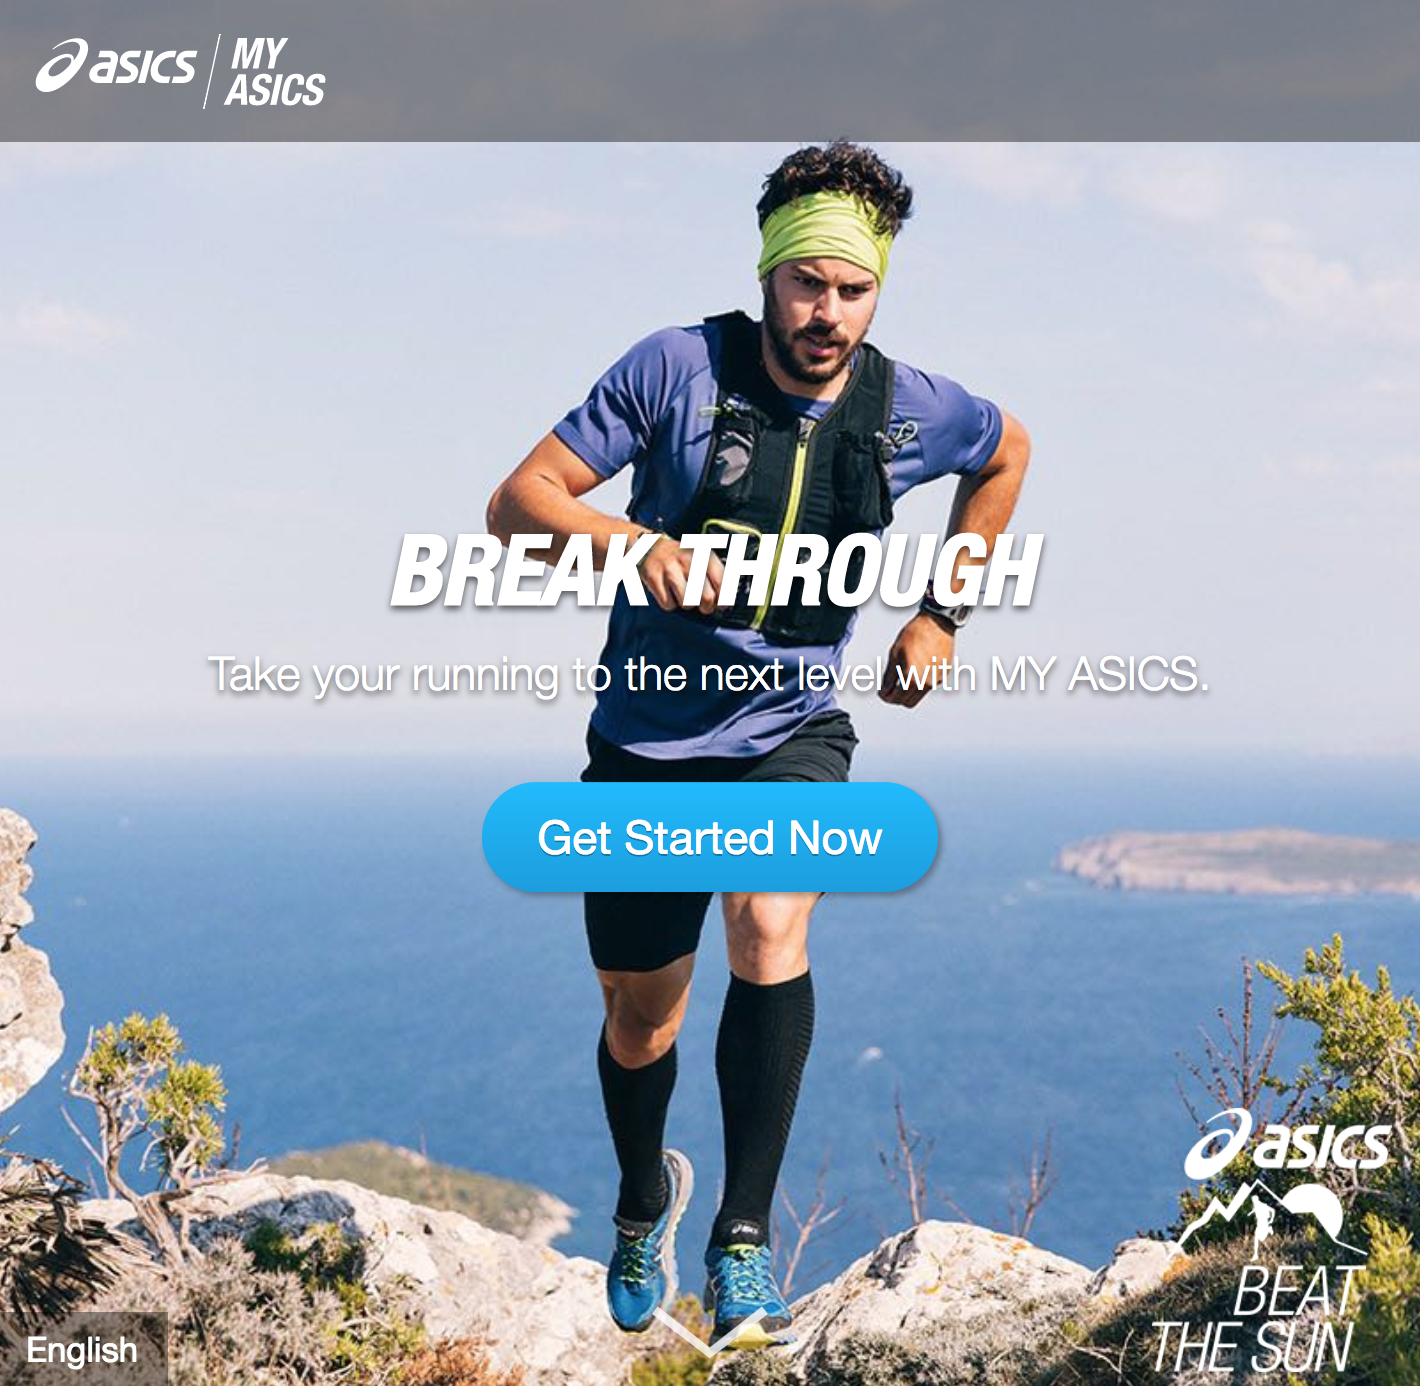 MyAsics.com is my go-to place for running training plans.